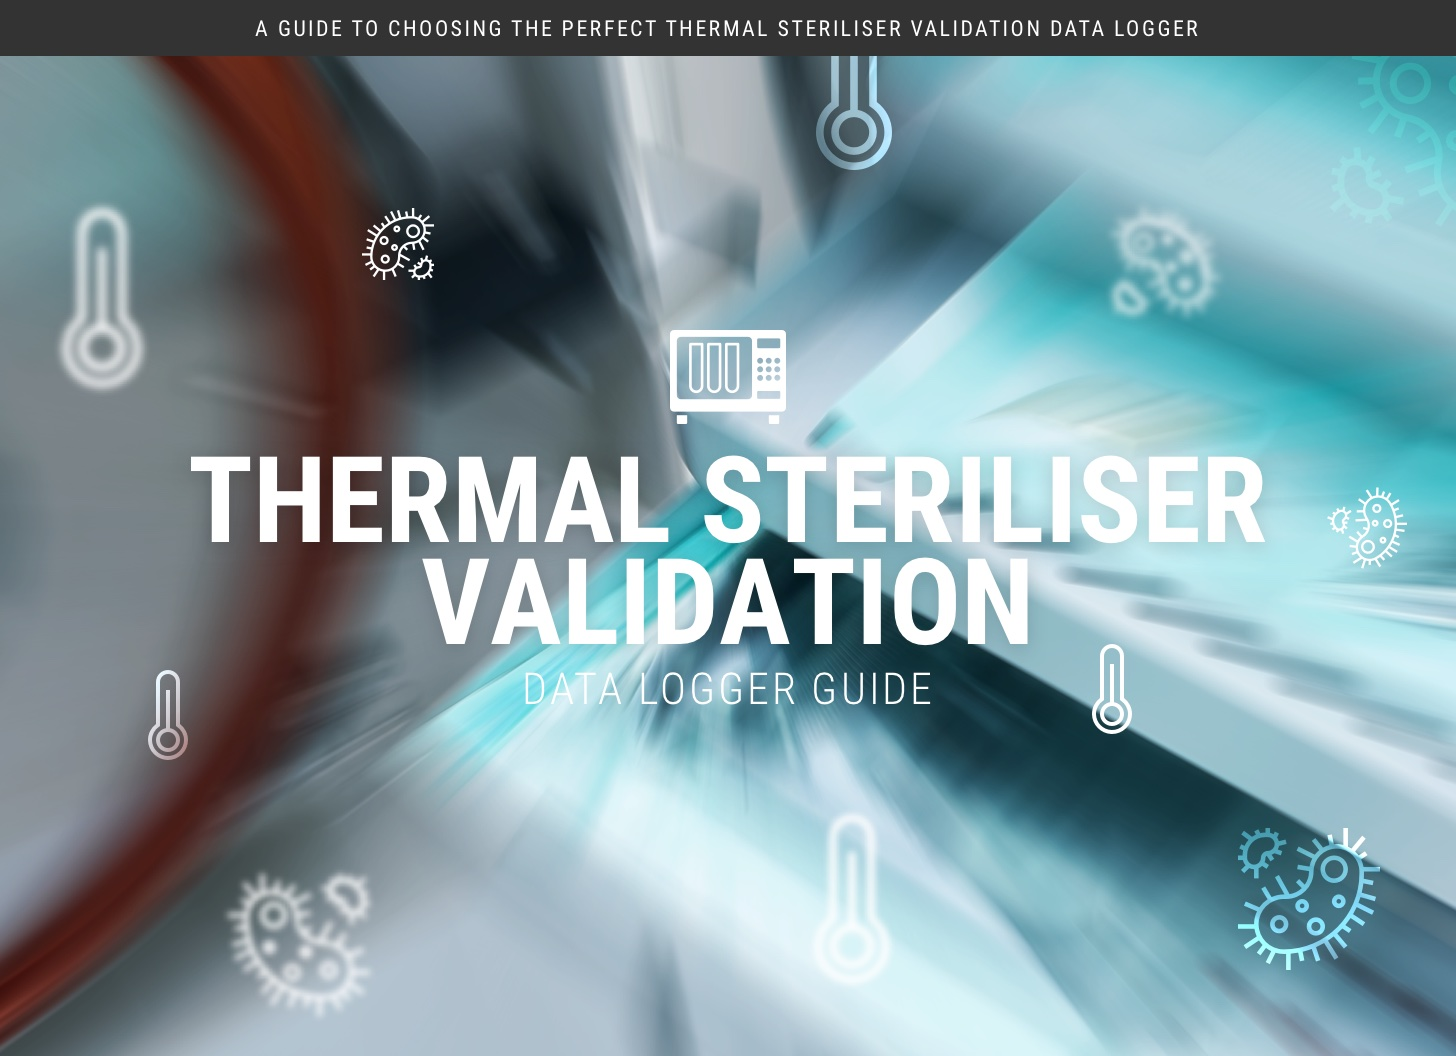 A Guide to Thermal & Sterilisation Validation